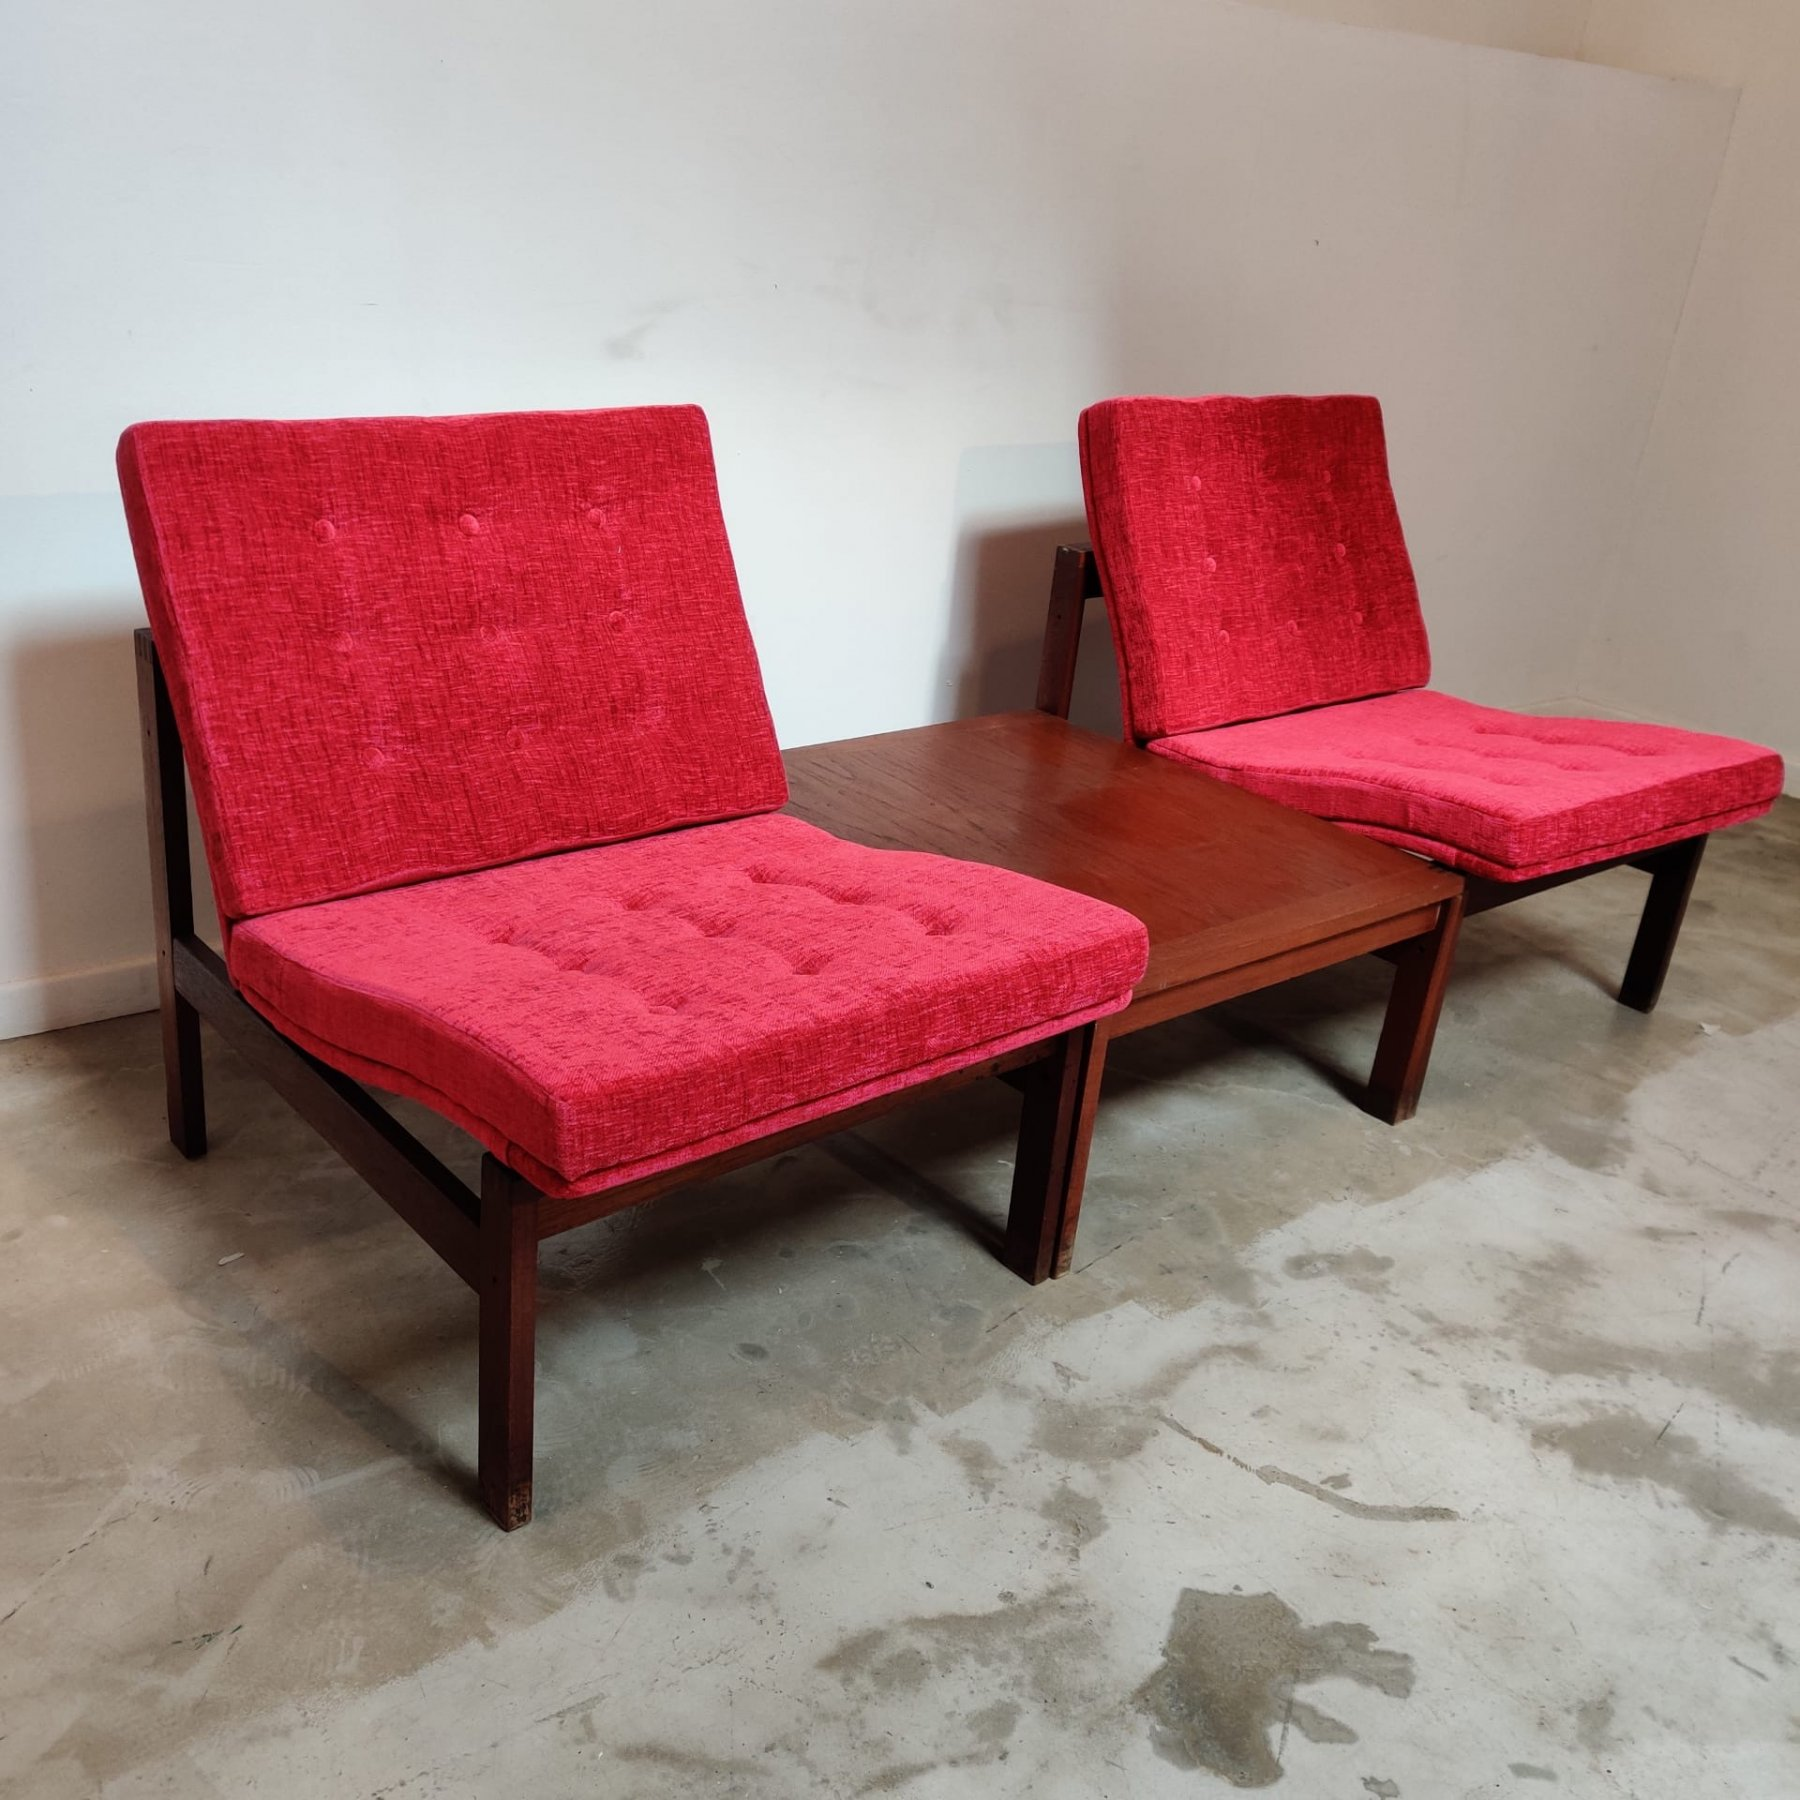 Two seaters bench